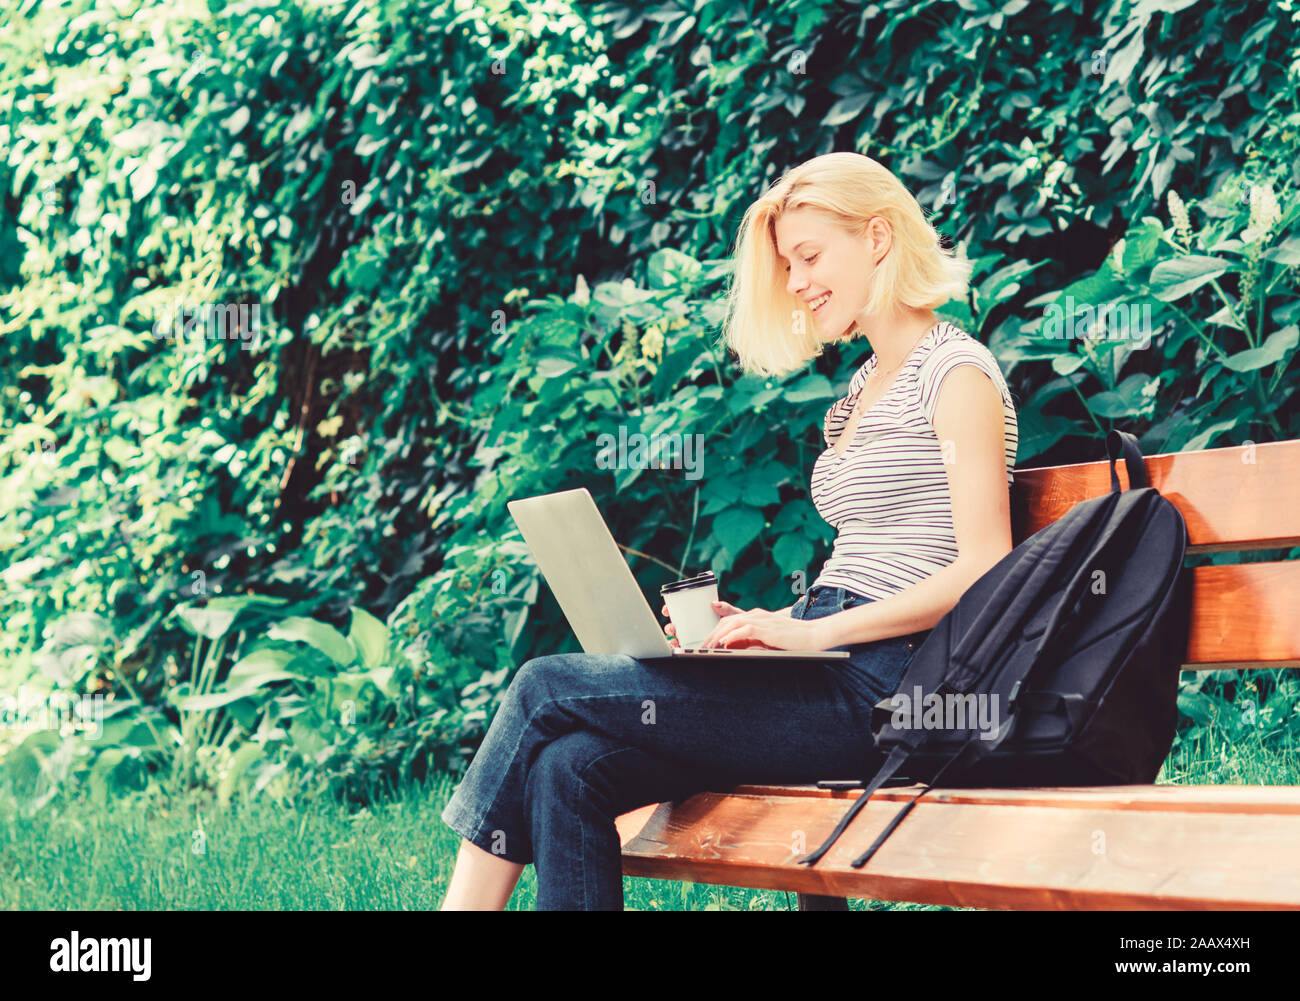 student girl study online. student prepare for exams. students life. Pretty woman. online education. modern woman student study online outdoor. happy woman work on laptop. Congratulations. Stock Photo